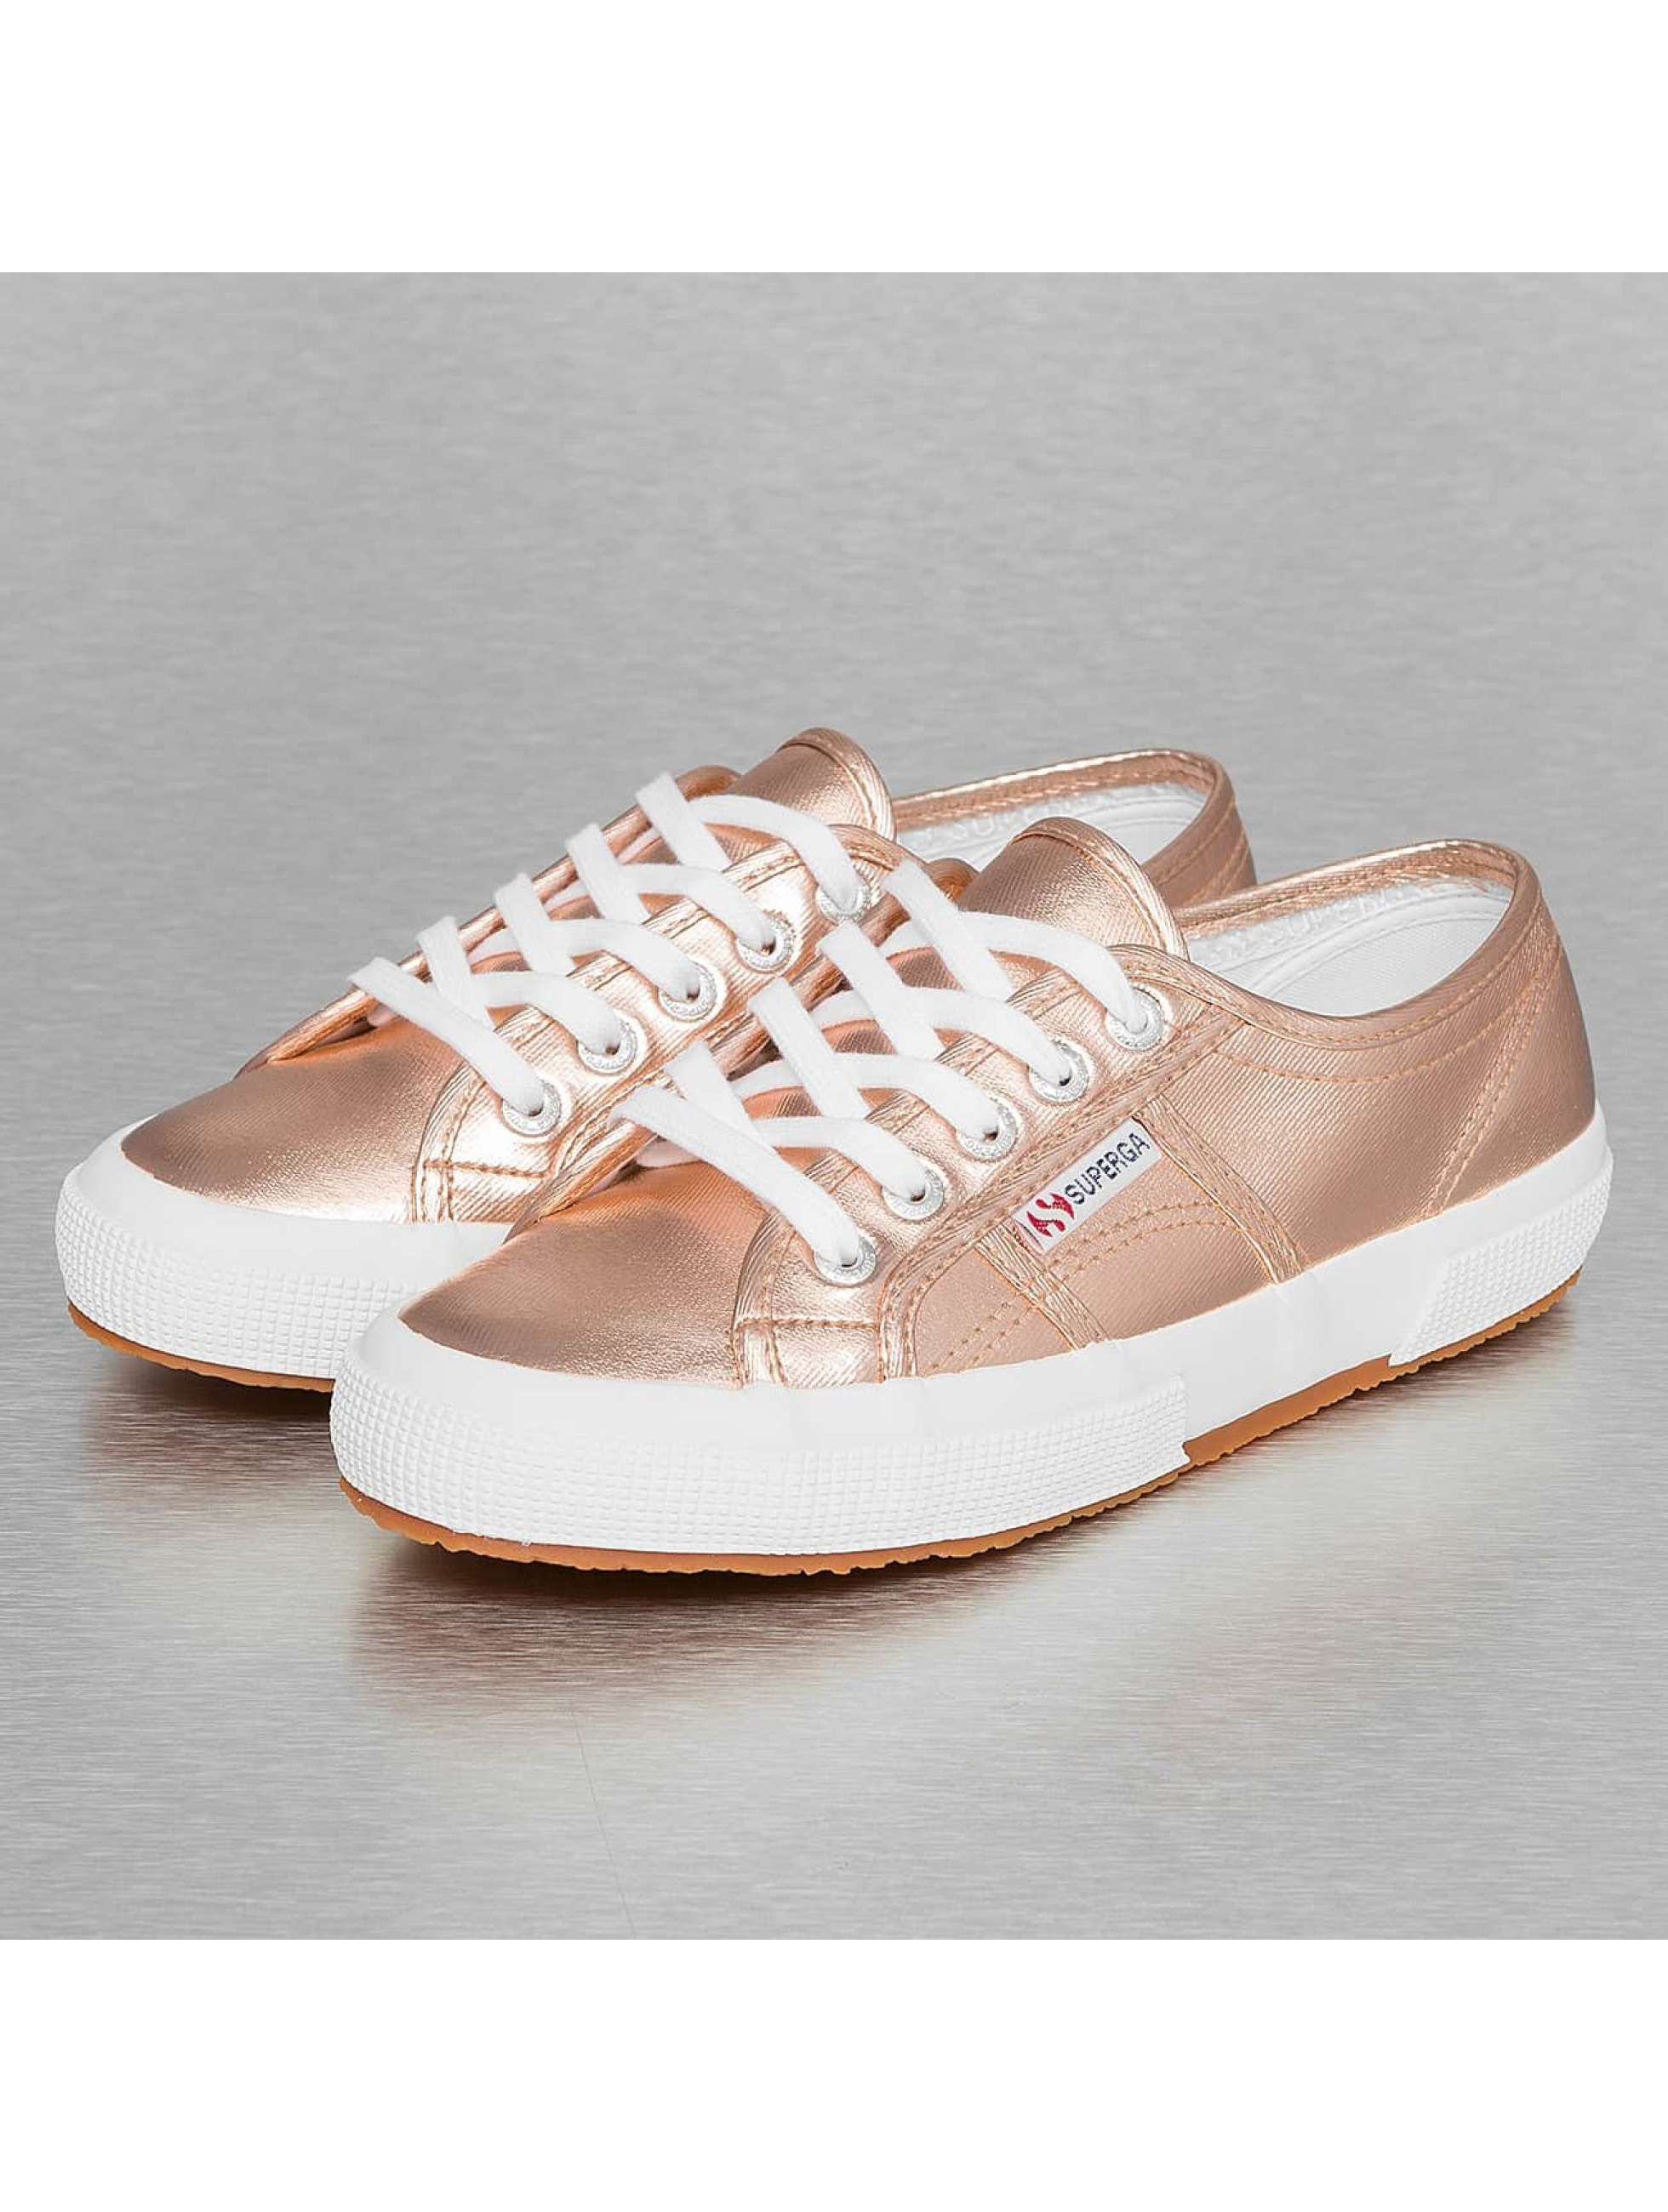 Superga Frauen Sneaker 2750 Cotmetu in rosa